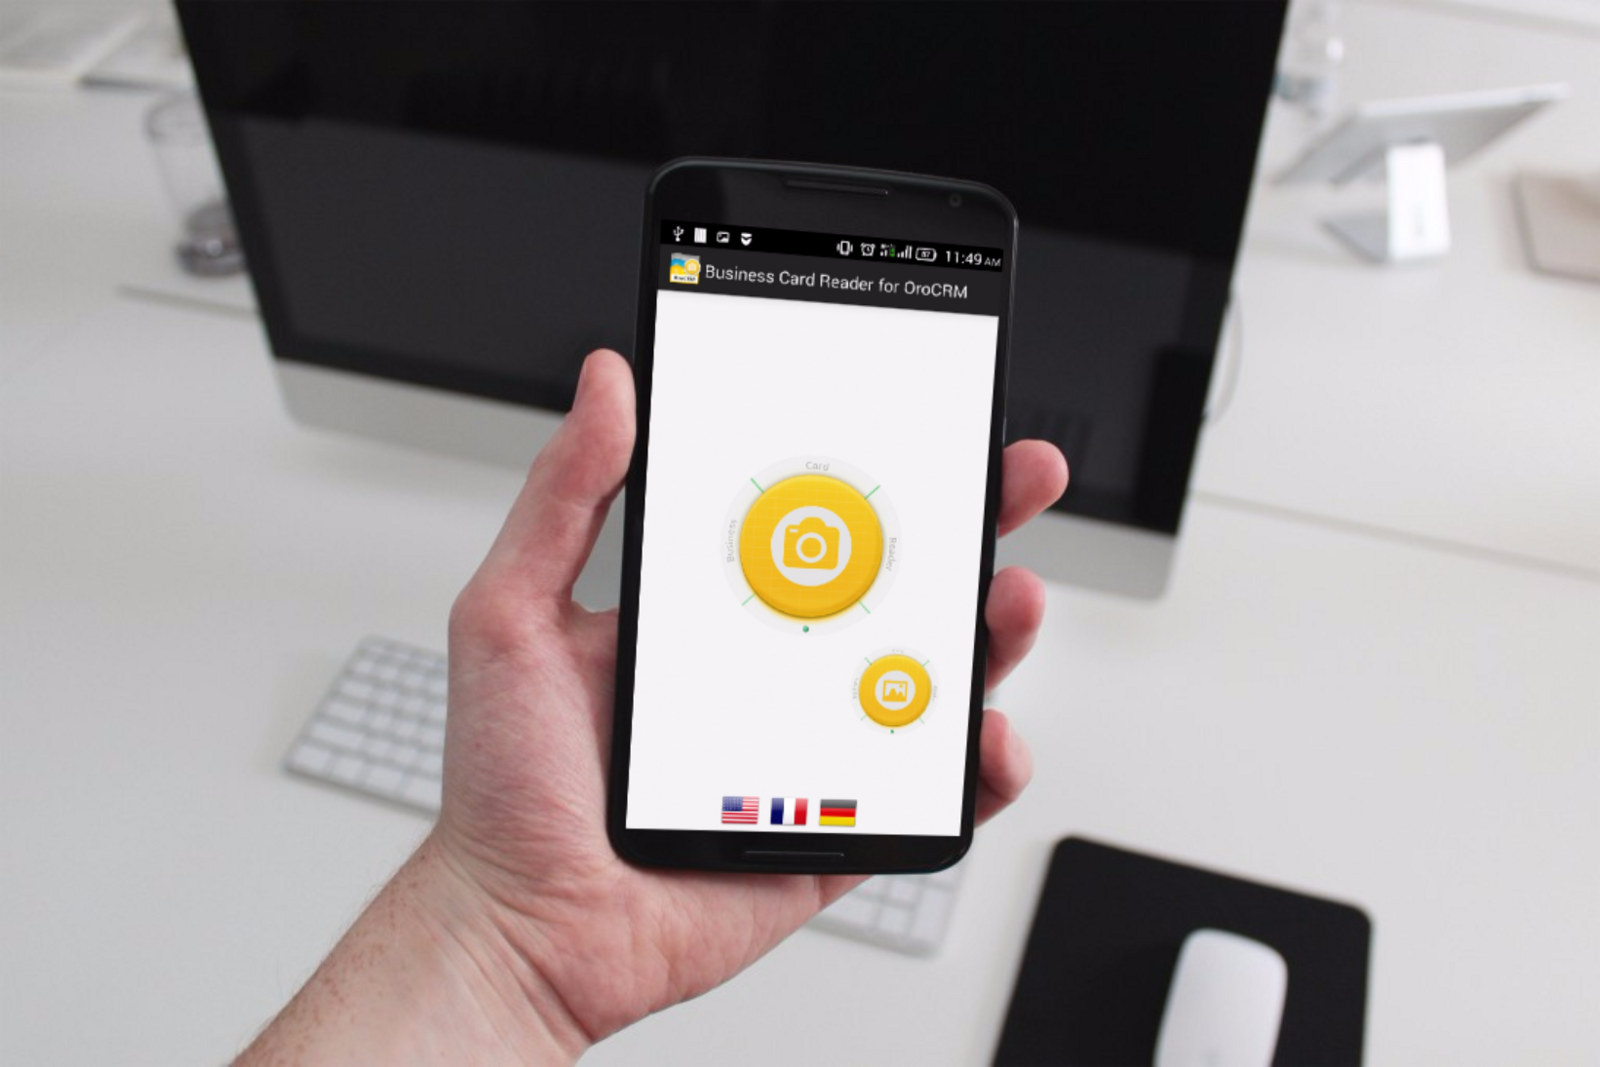 How to use business card reader for oro crm properly try free demo version of business card reader for oro crm now and youll be satisfied how it works colourmoves